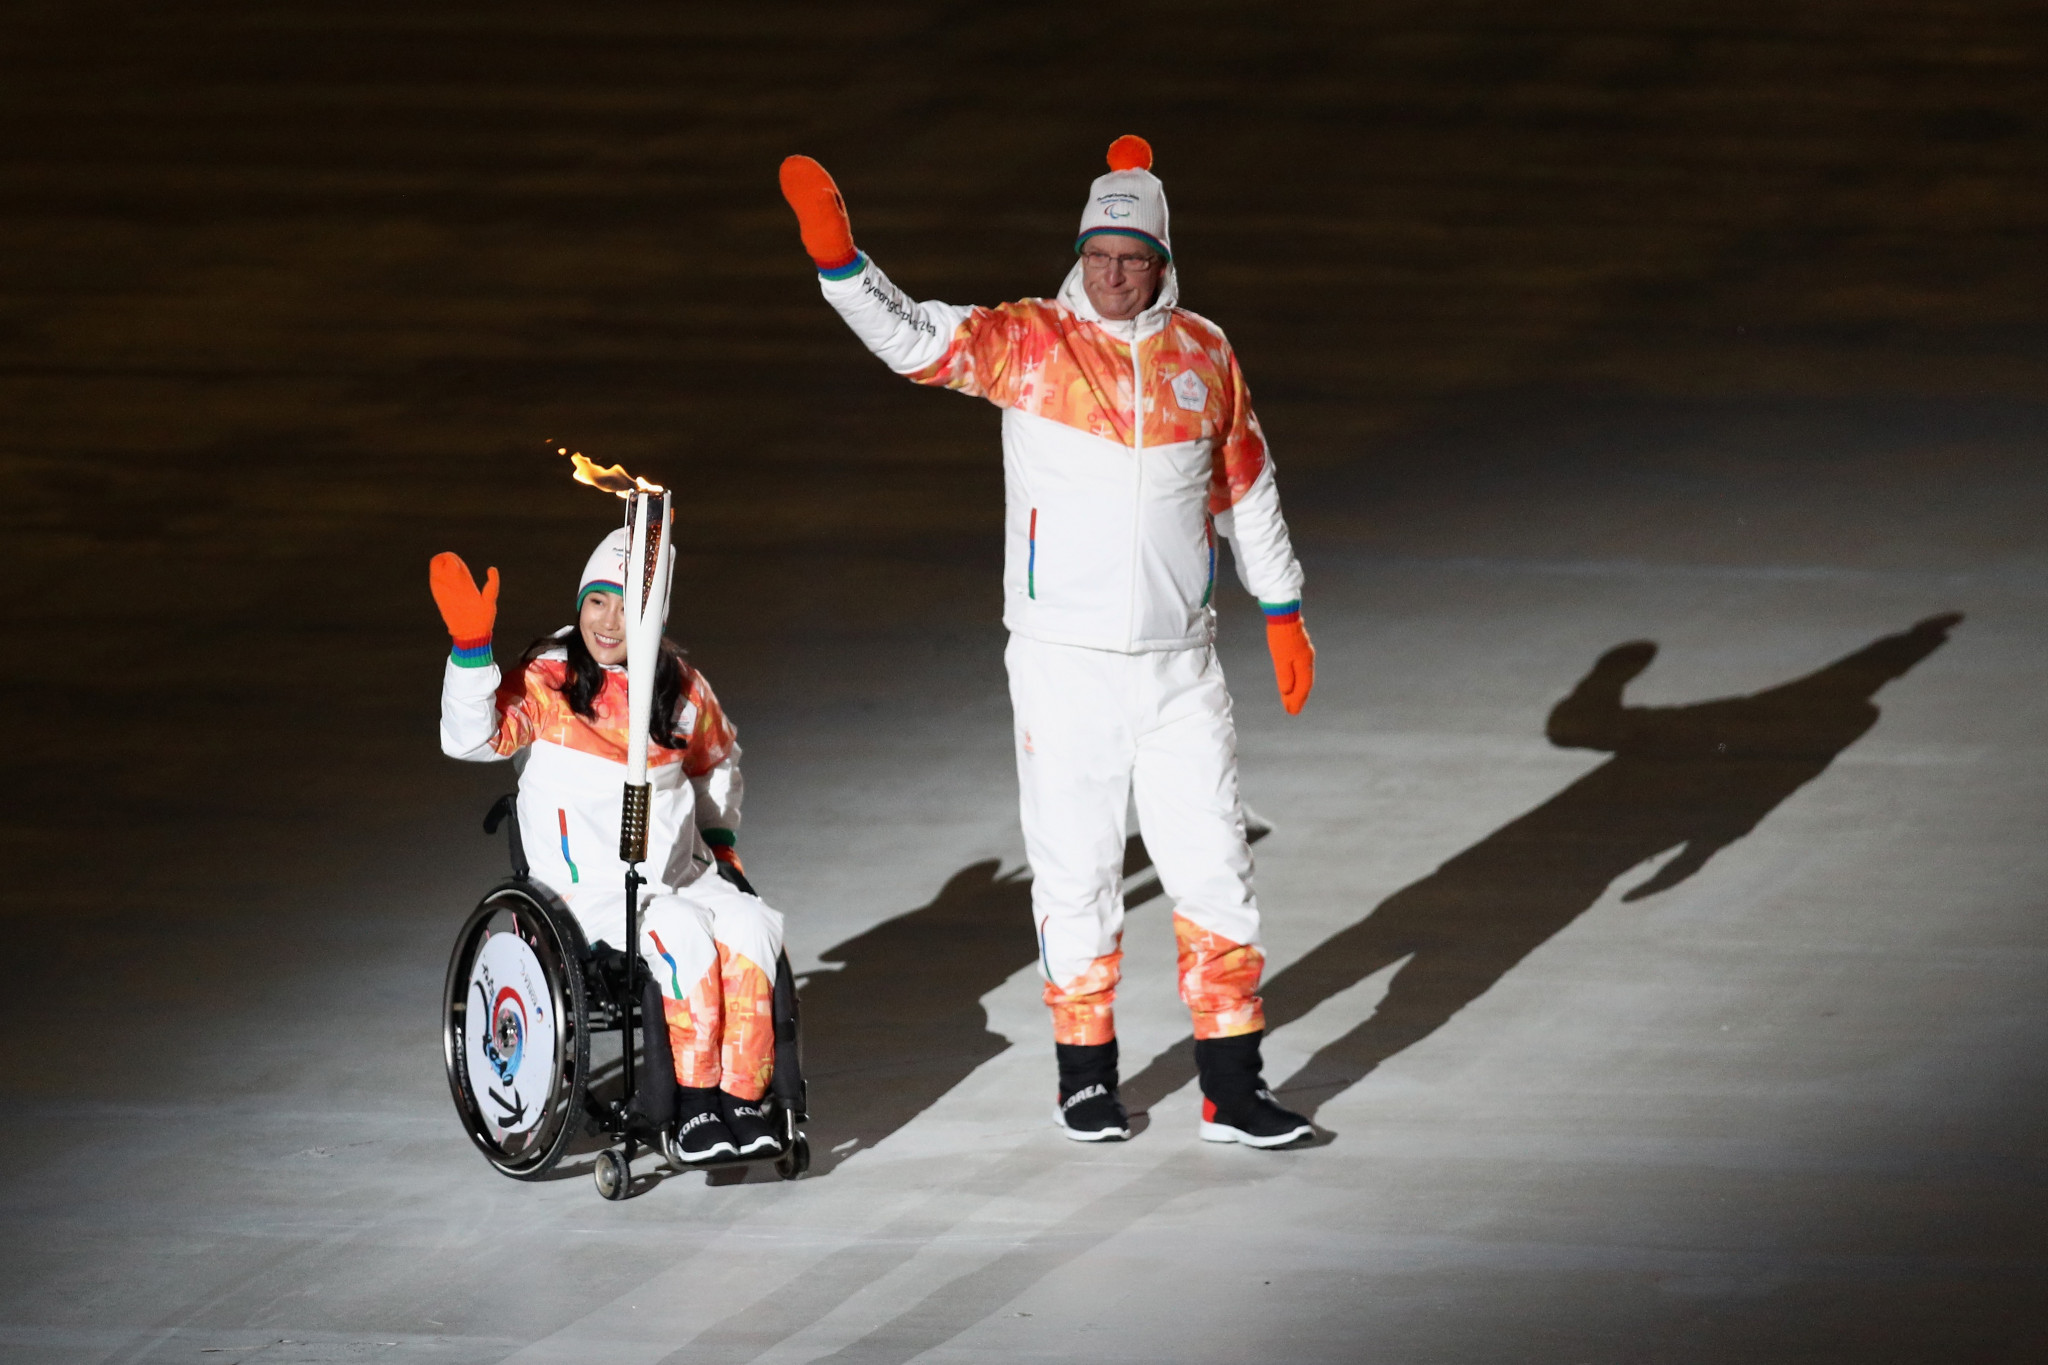 Vo Ra Mi Seo had been one of the Torch bearers at the Opening Ceremony of the 2018 Paralympic Games in Pyeongchang ©Getty Images